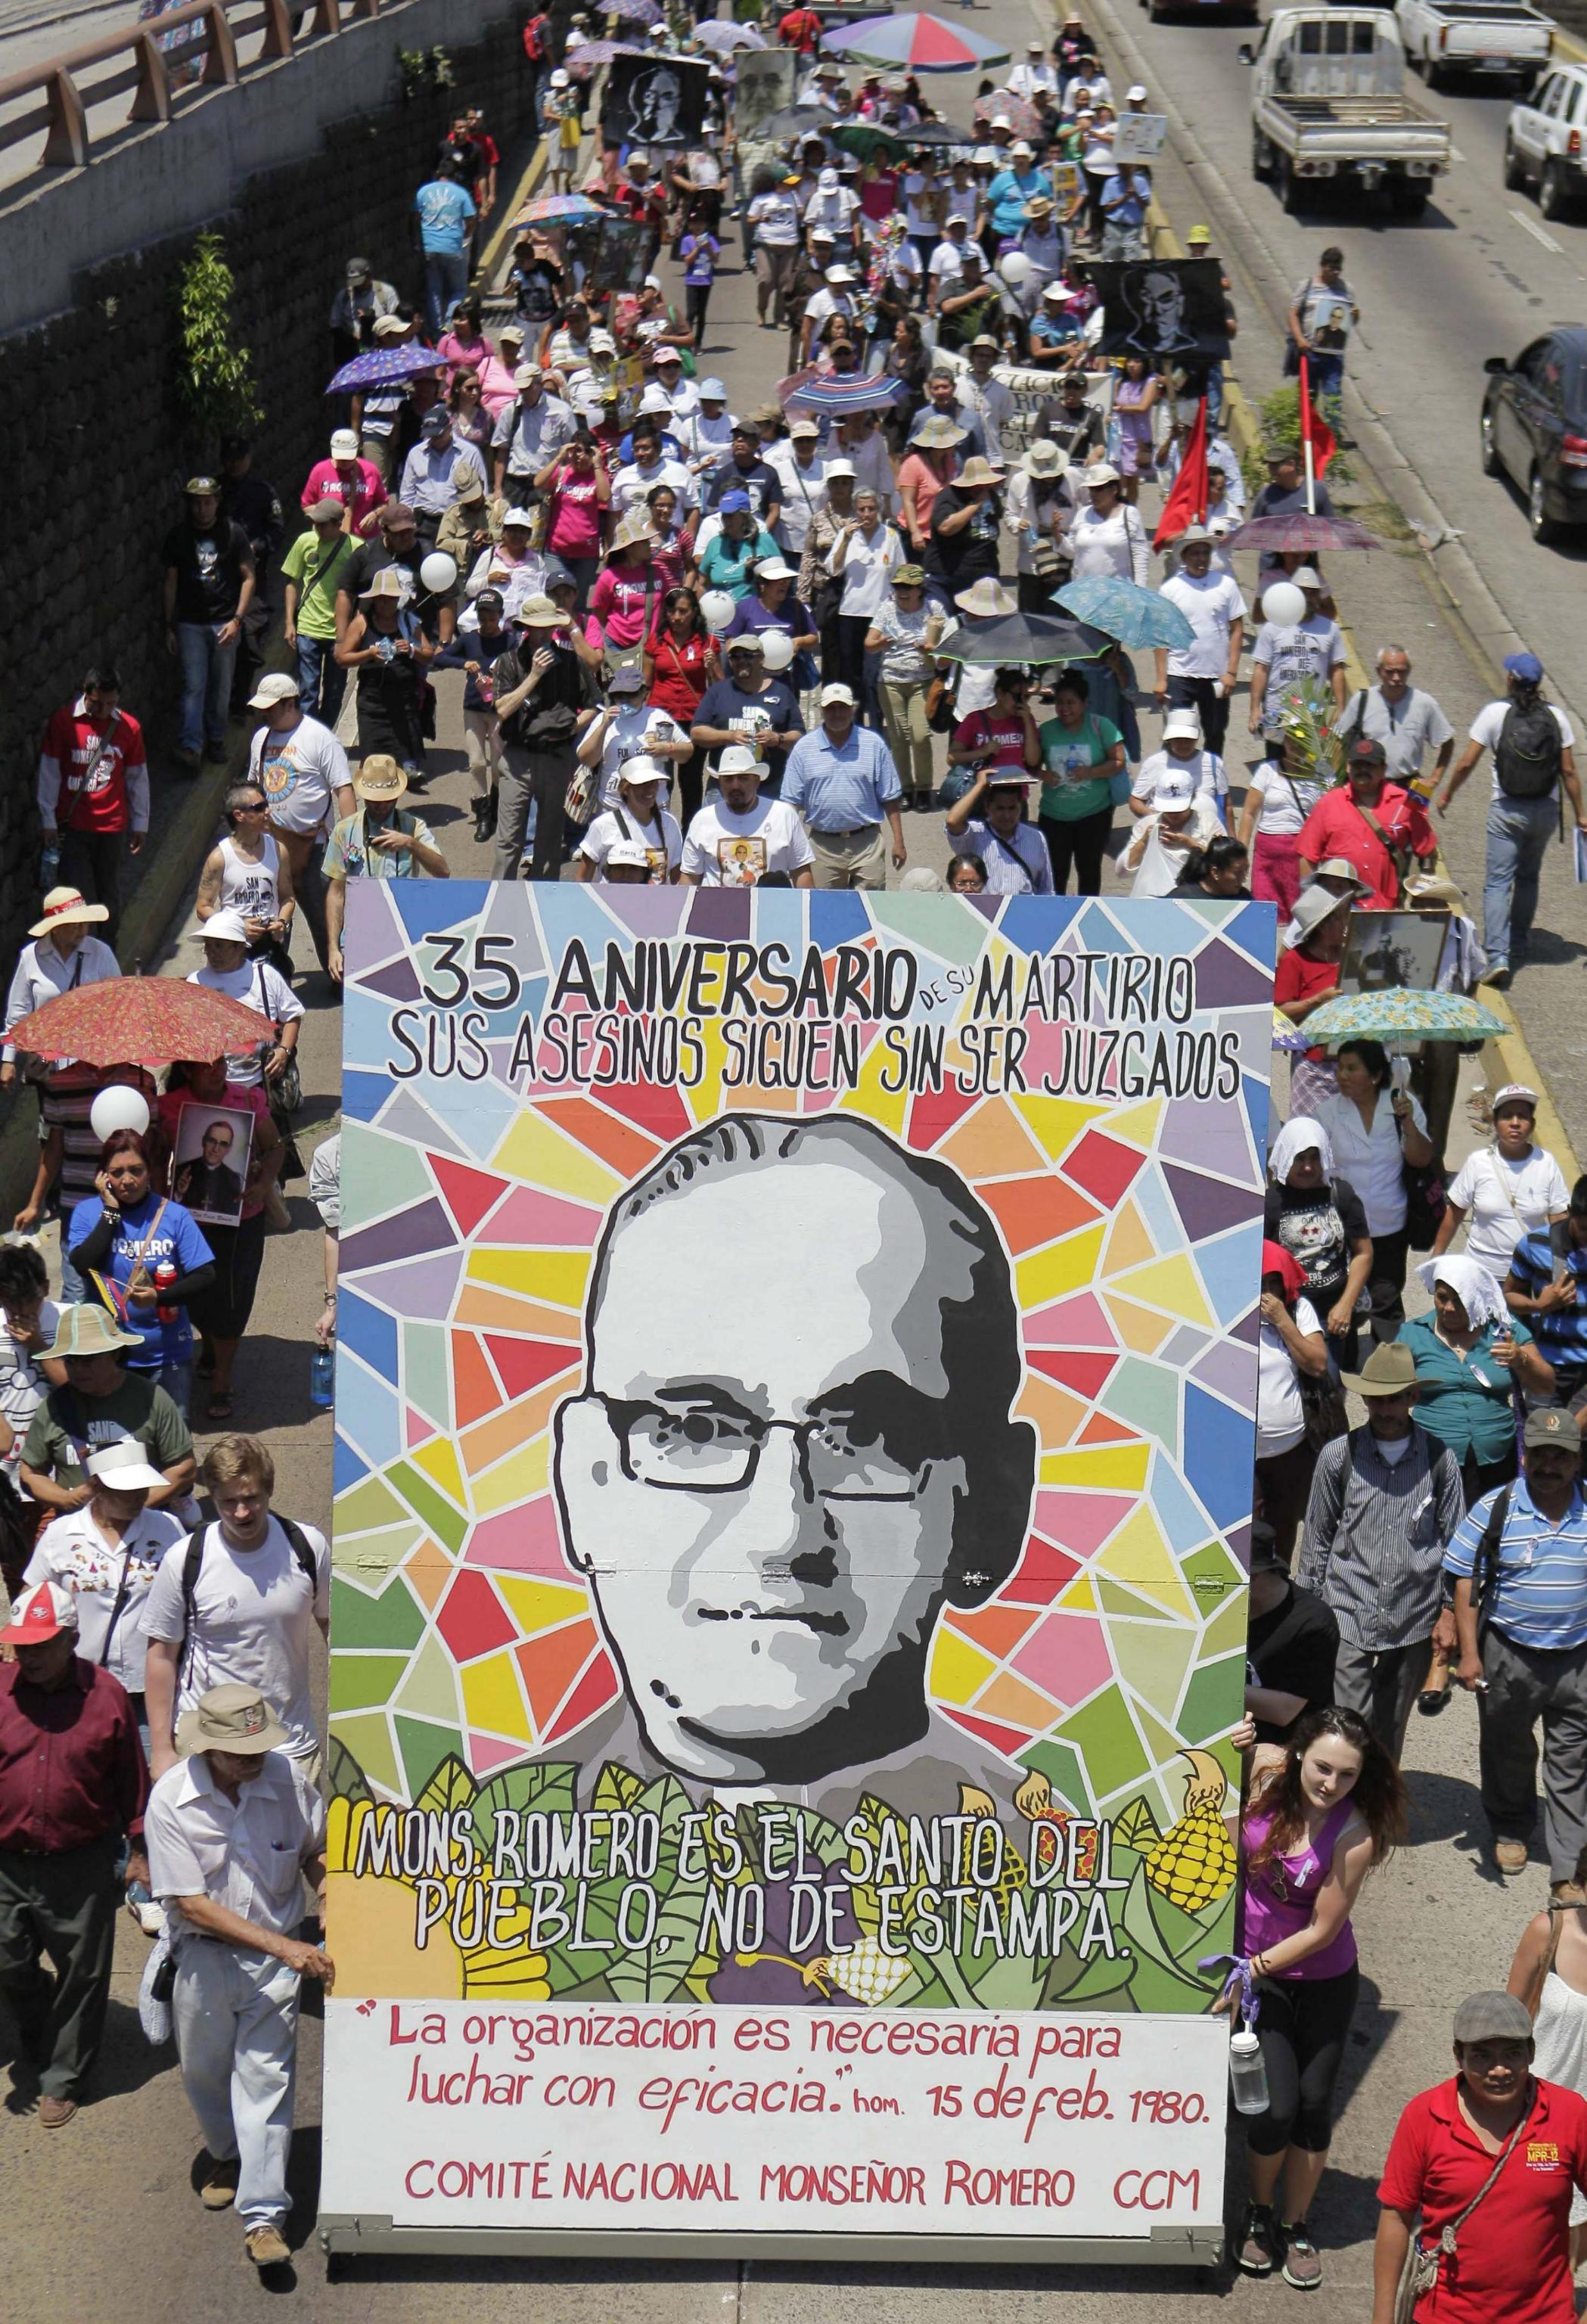 Salvadoreans take part in the march commemorating the 35th anniversary of the assassination of Archbishop Oscar Arnulfo (24th of March 1980)